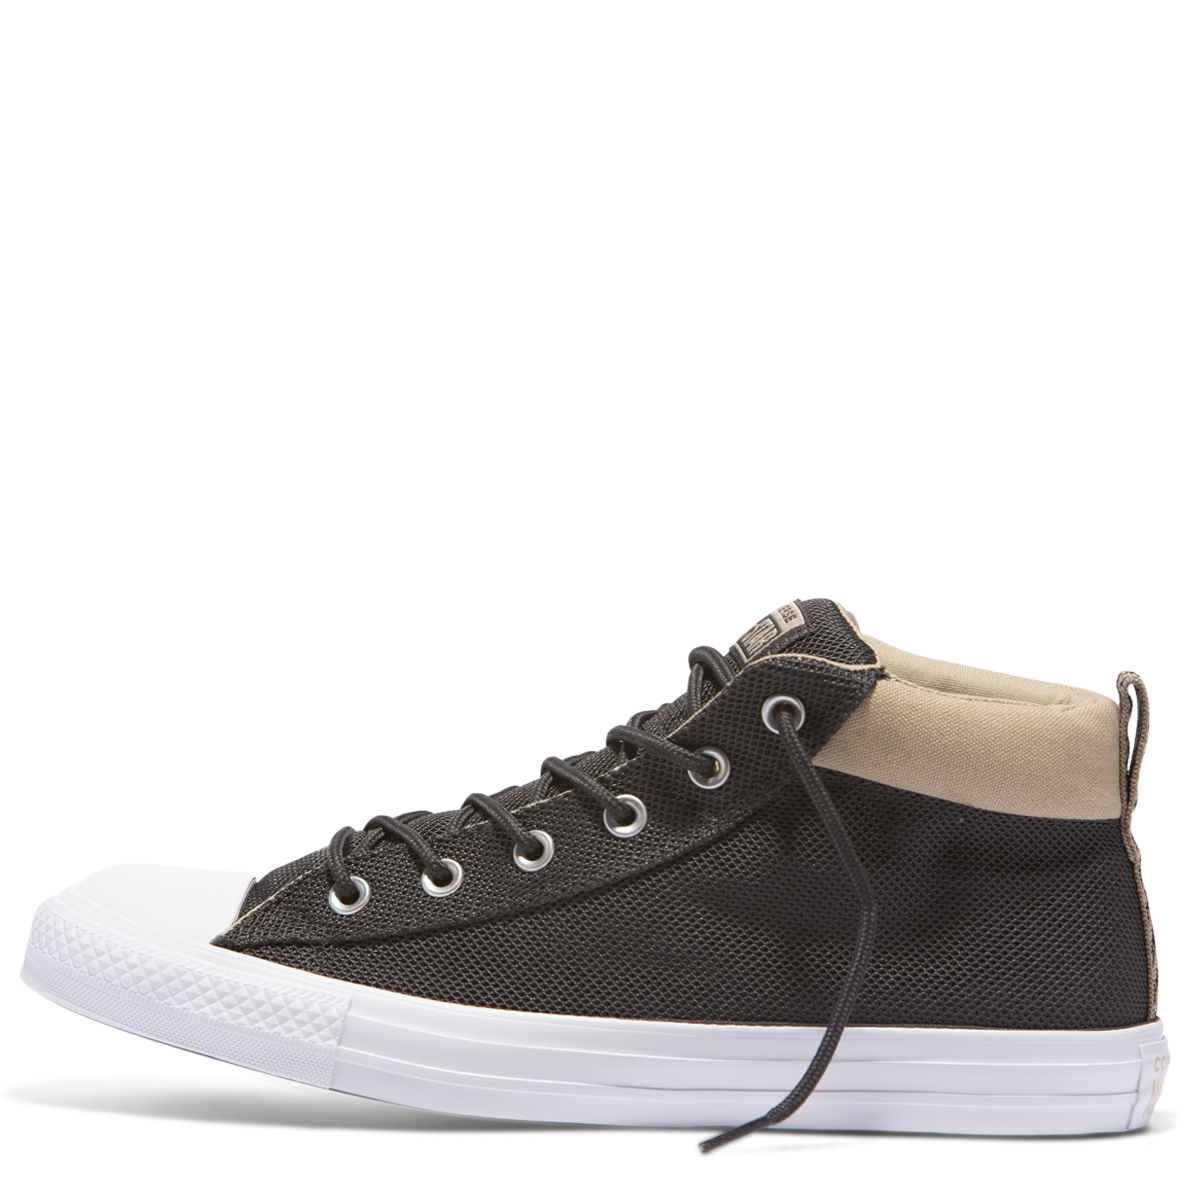 71602b50e33e9f CHUCK TAYLOR STREET SPORTS NYLON MID BLACK - Mens -Footwear   Urban ...